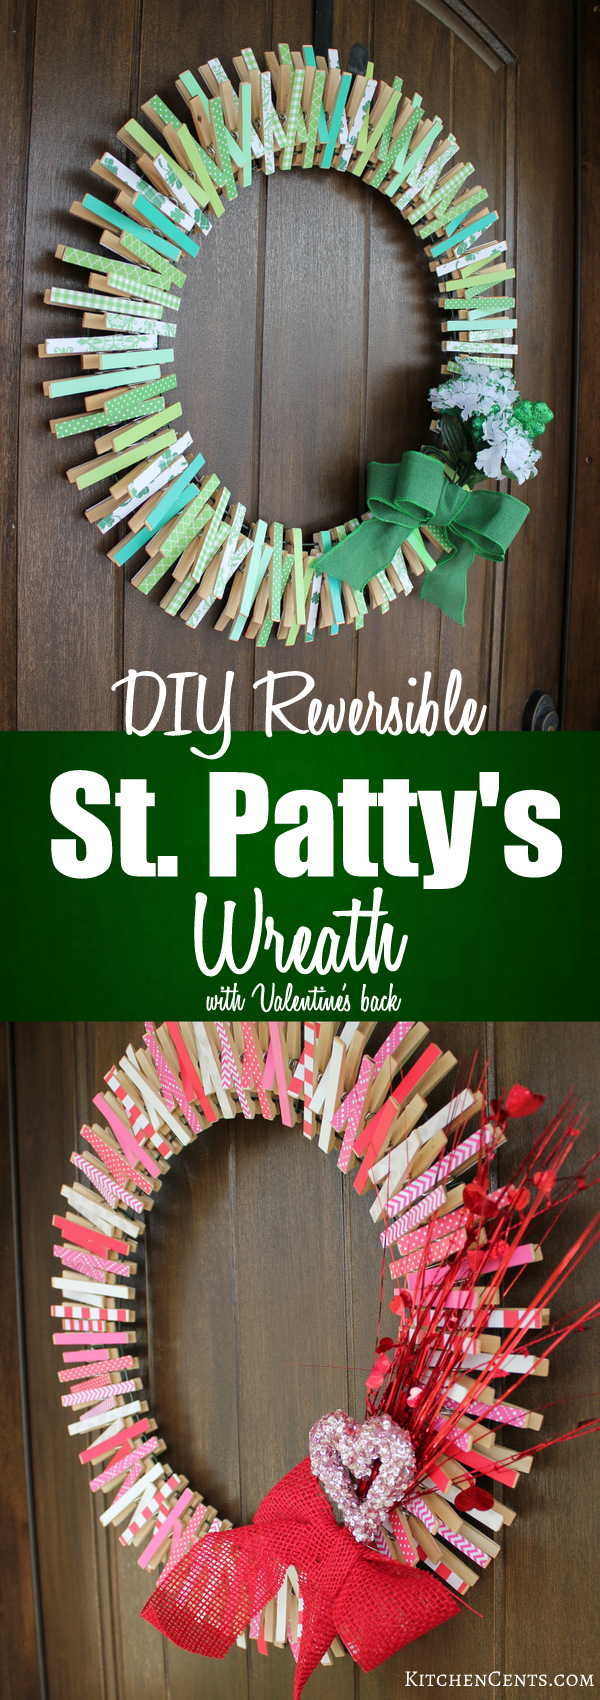 DIY Reversible St. Patty's Wreath | KitchenCents.com